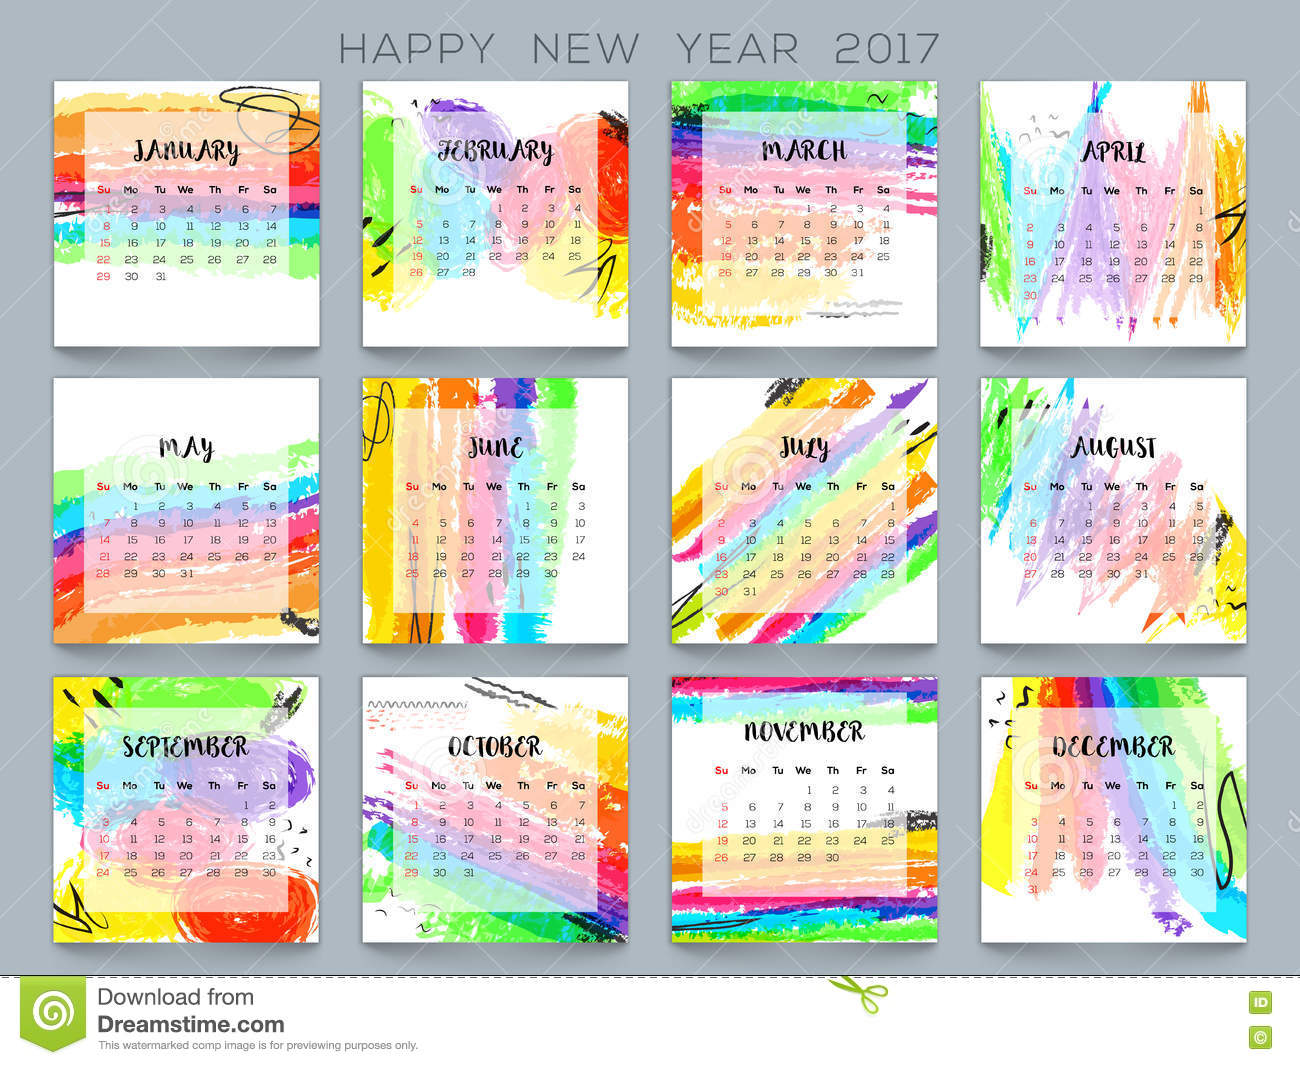 Colorful Yearly Calendar For New Year 2017 Stock